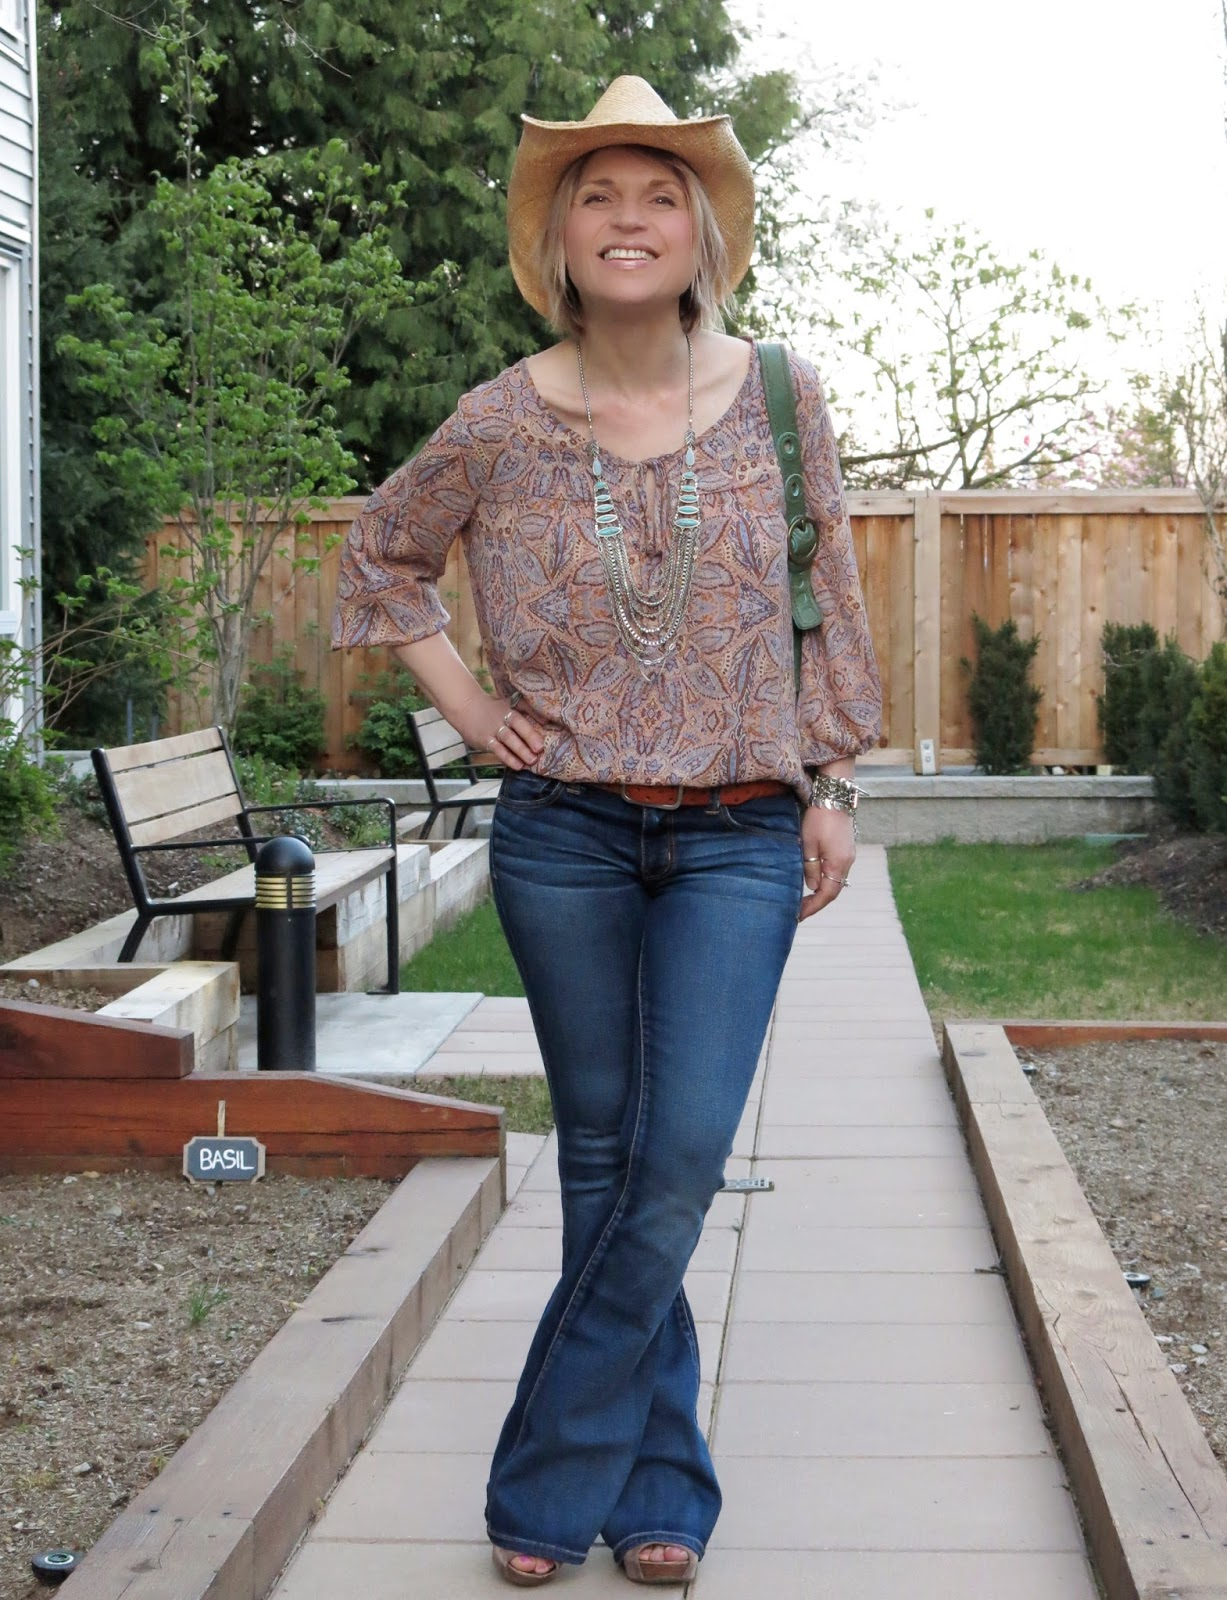 styling flare jeans with a paisley blouse and cowboy hat